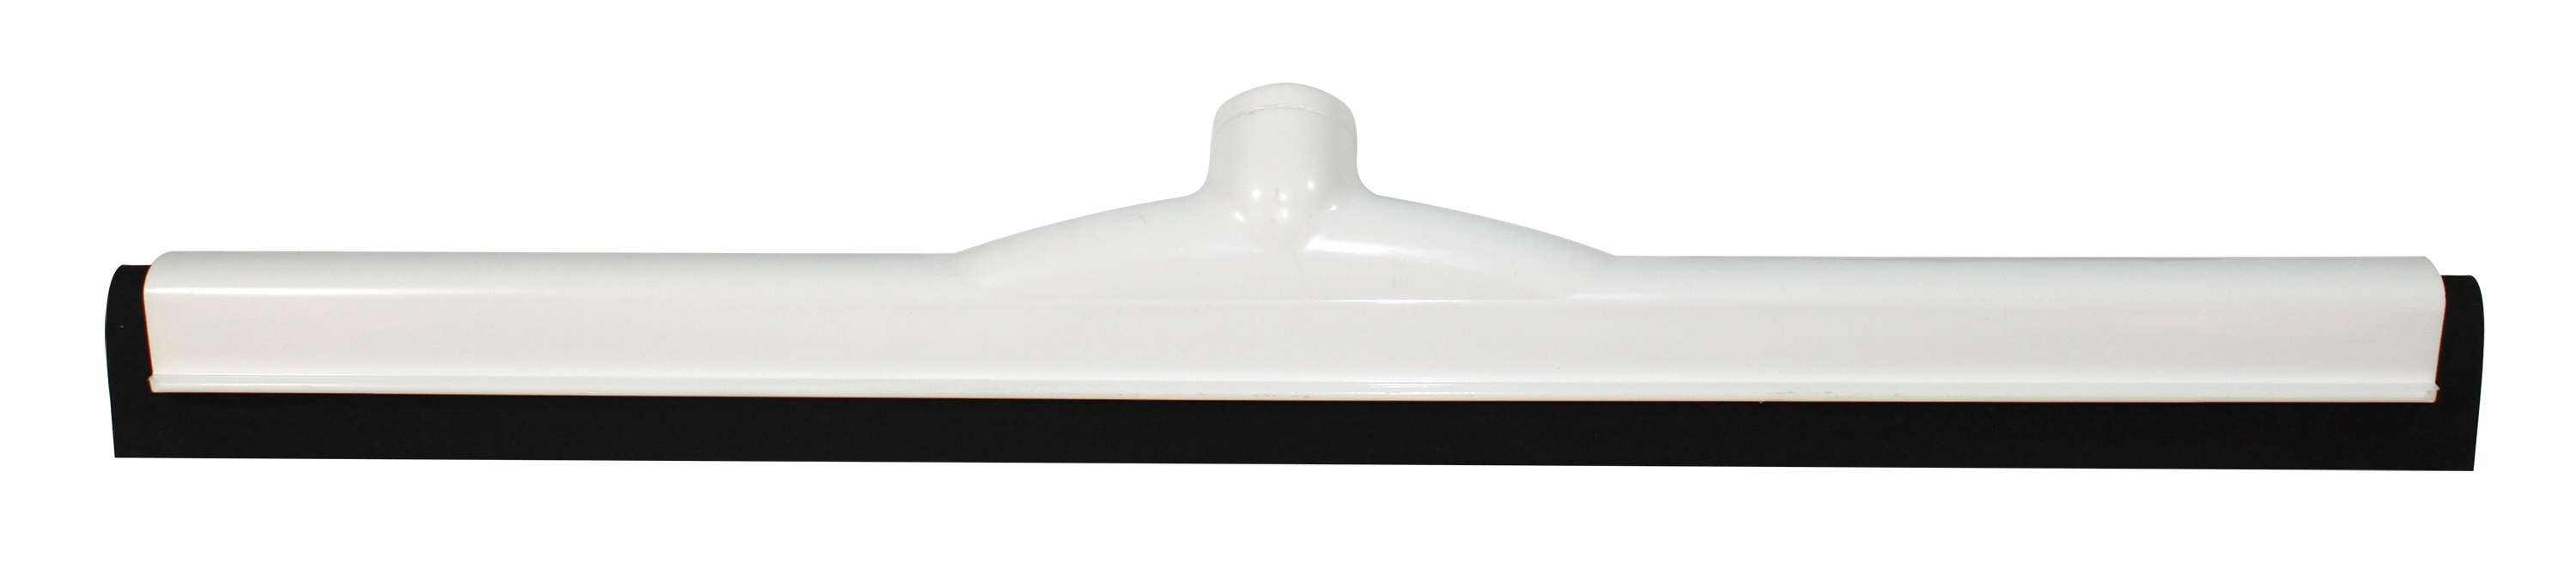 Impact Products 6261 floor squeegee